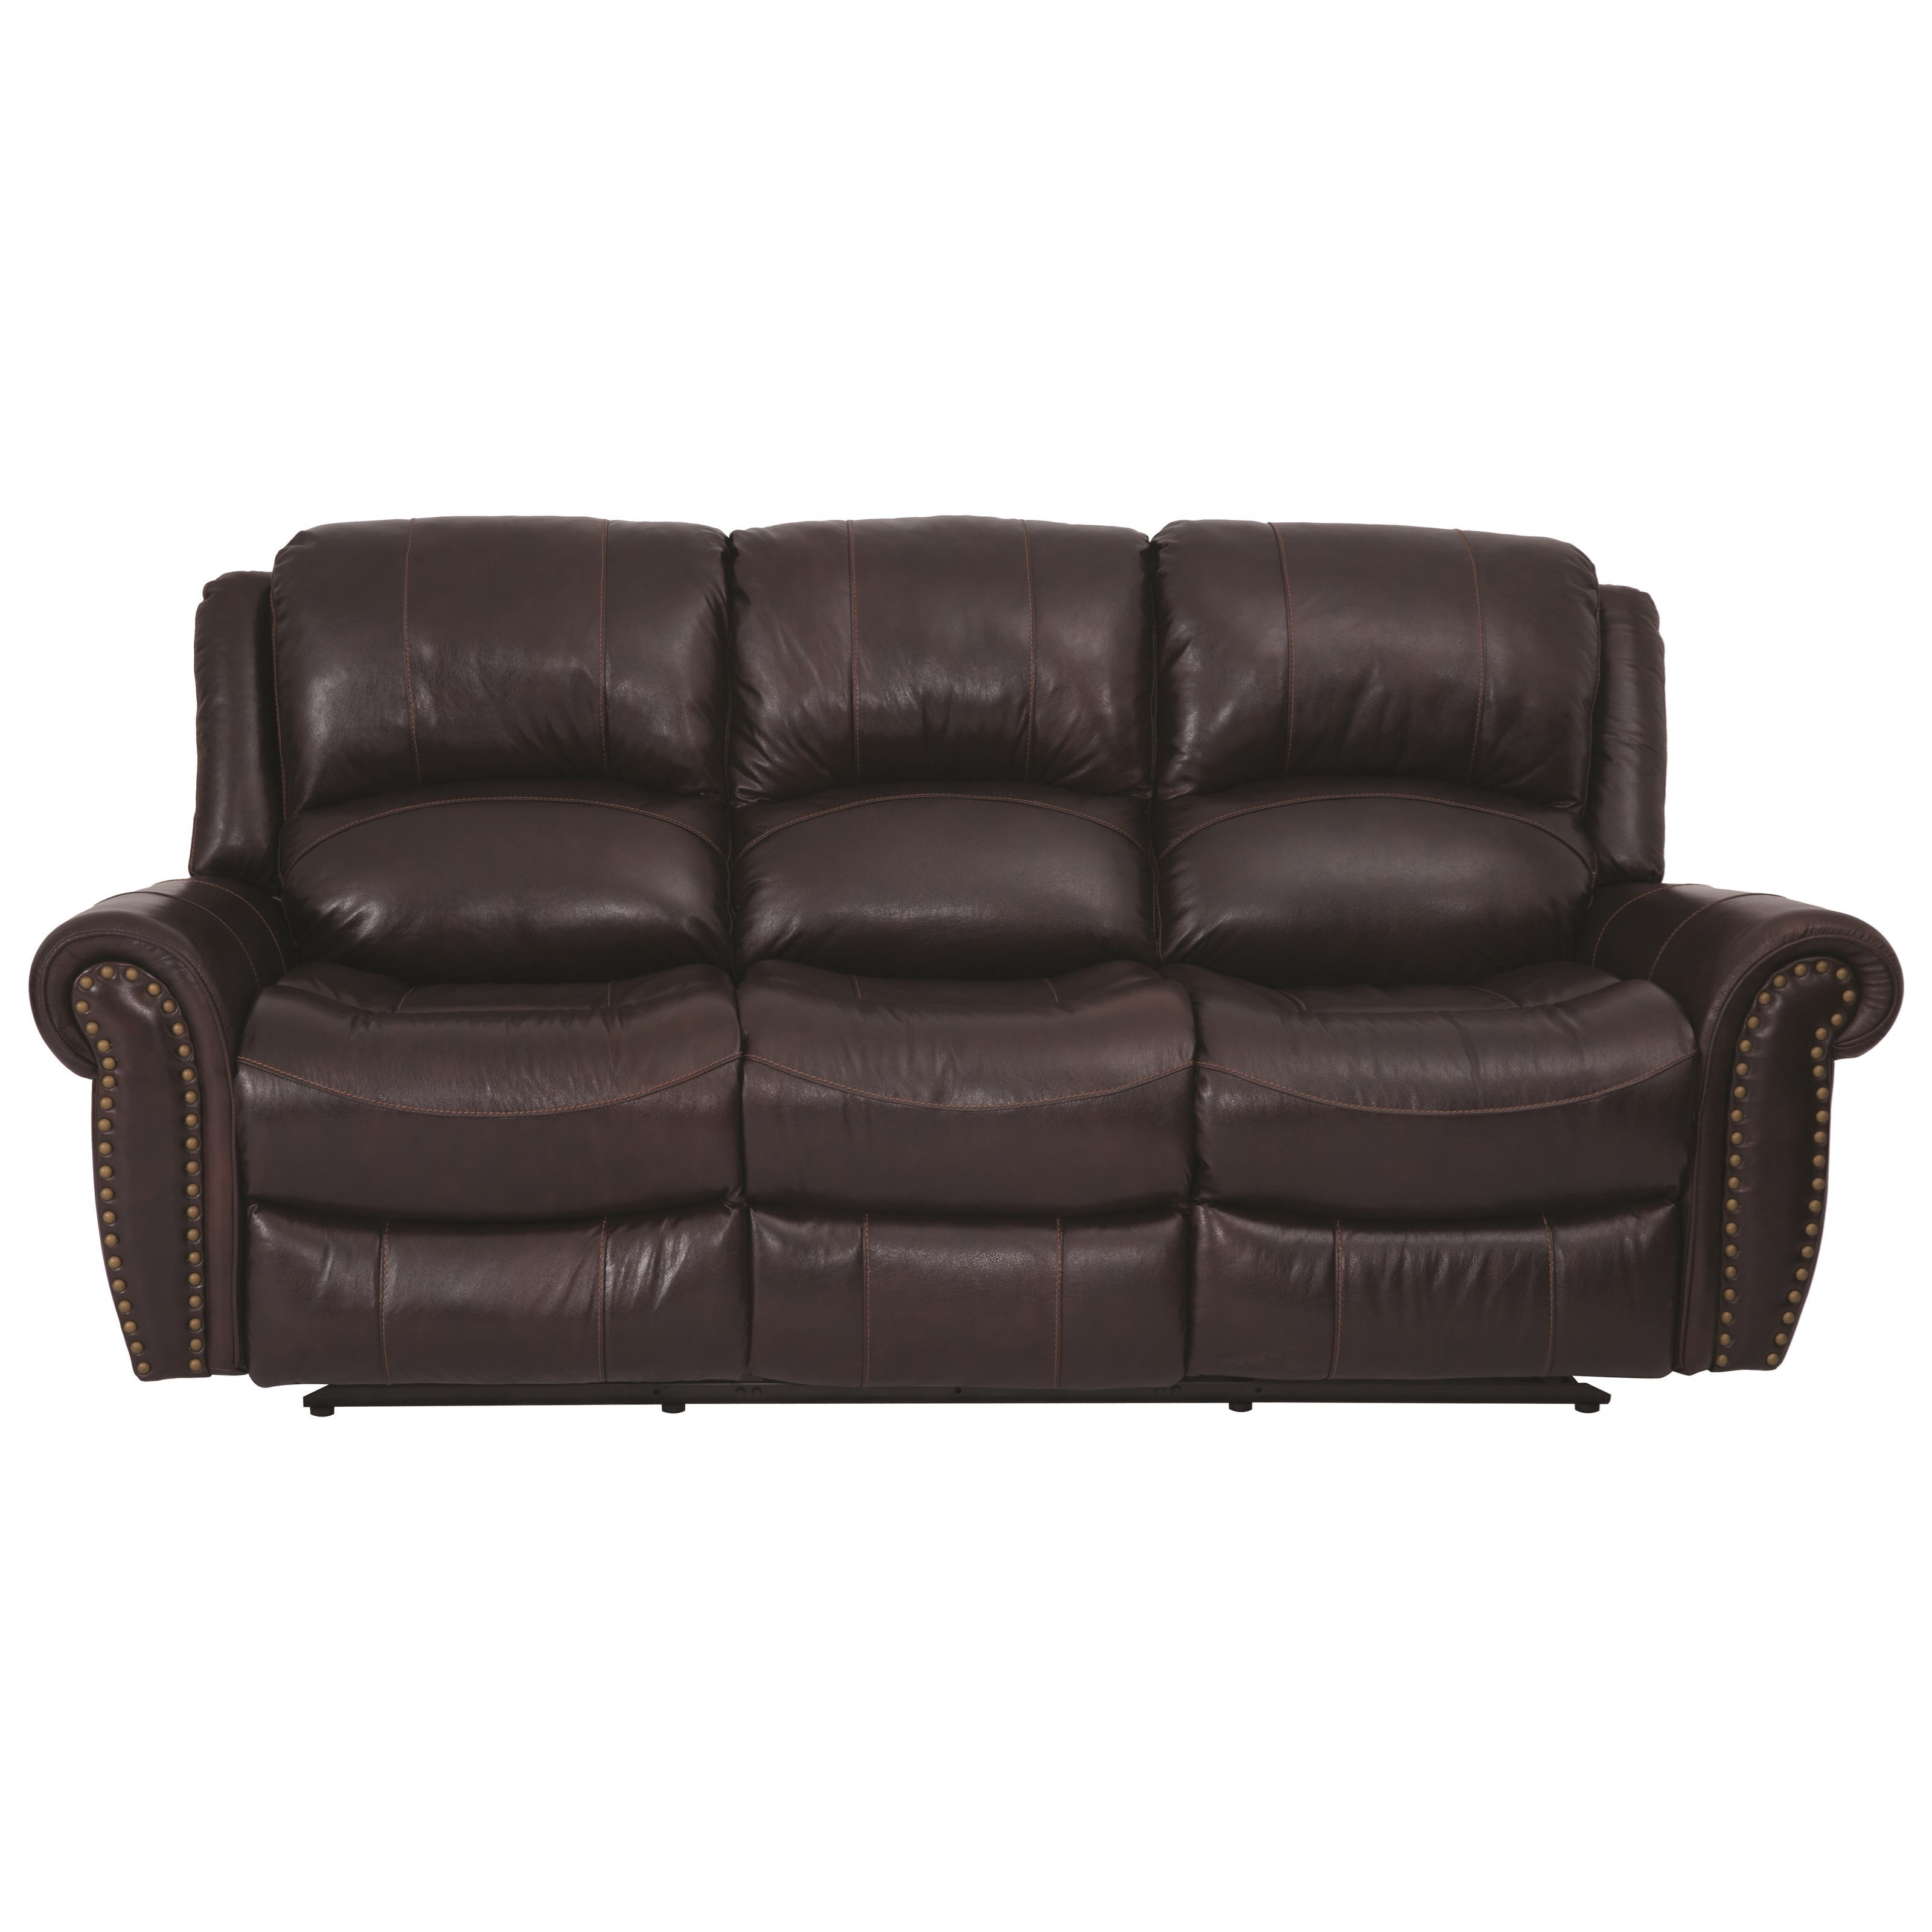 Cheers Sofa UXW9888M Power Reclining Sofa with Nailhead  : uxw9888muxw9888m20l3 2e 2543 b1jpgscalebothampwidth500ampheight500ampfsharpen25ampdown from www.darvin.com size 500 x 500 jpeg 22kB